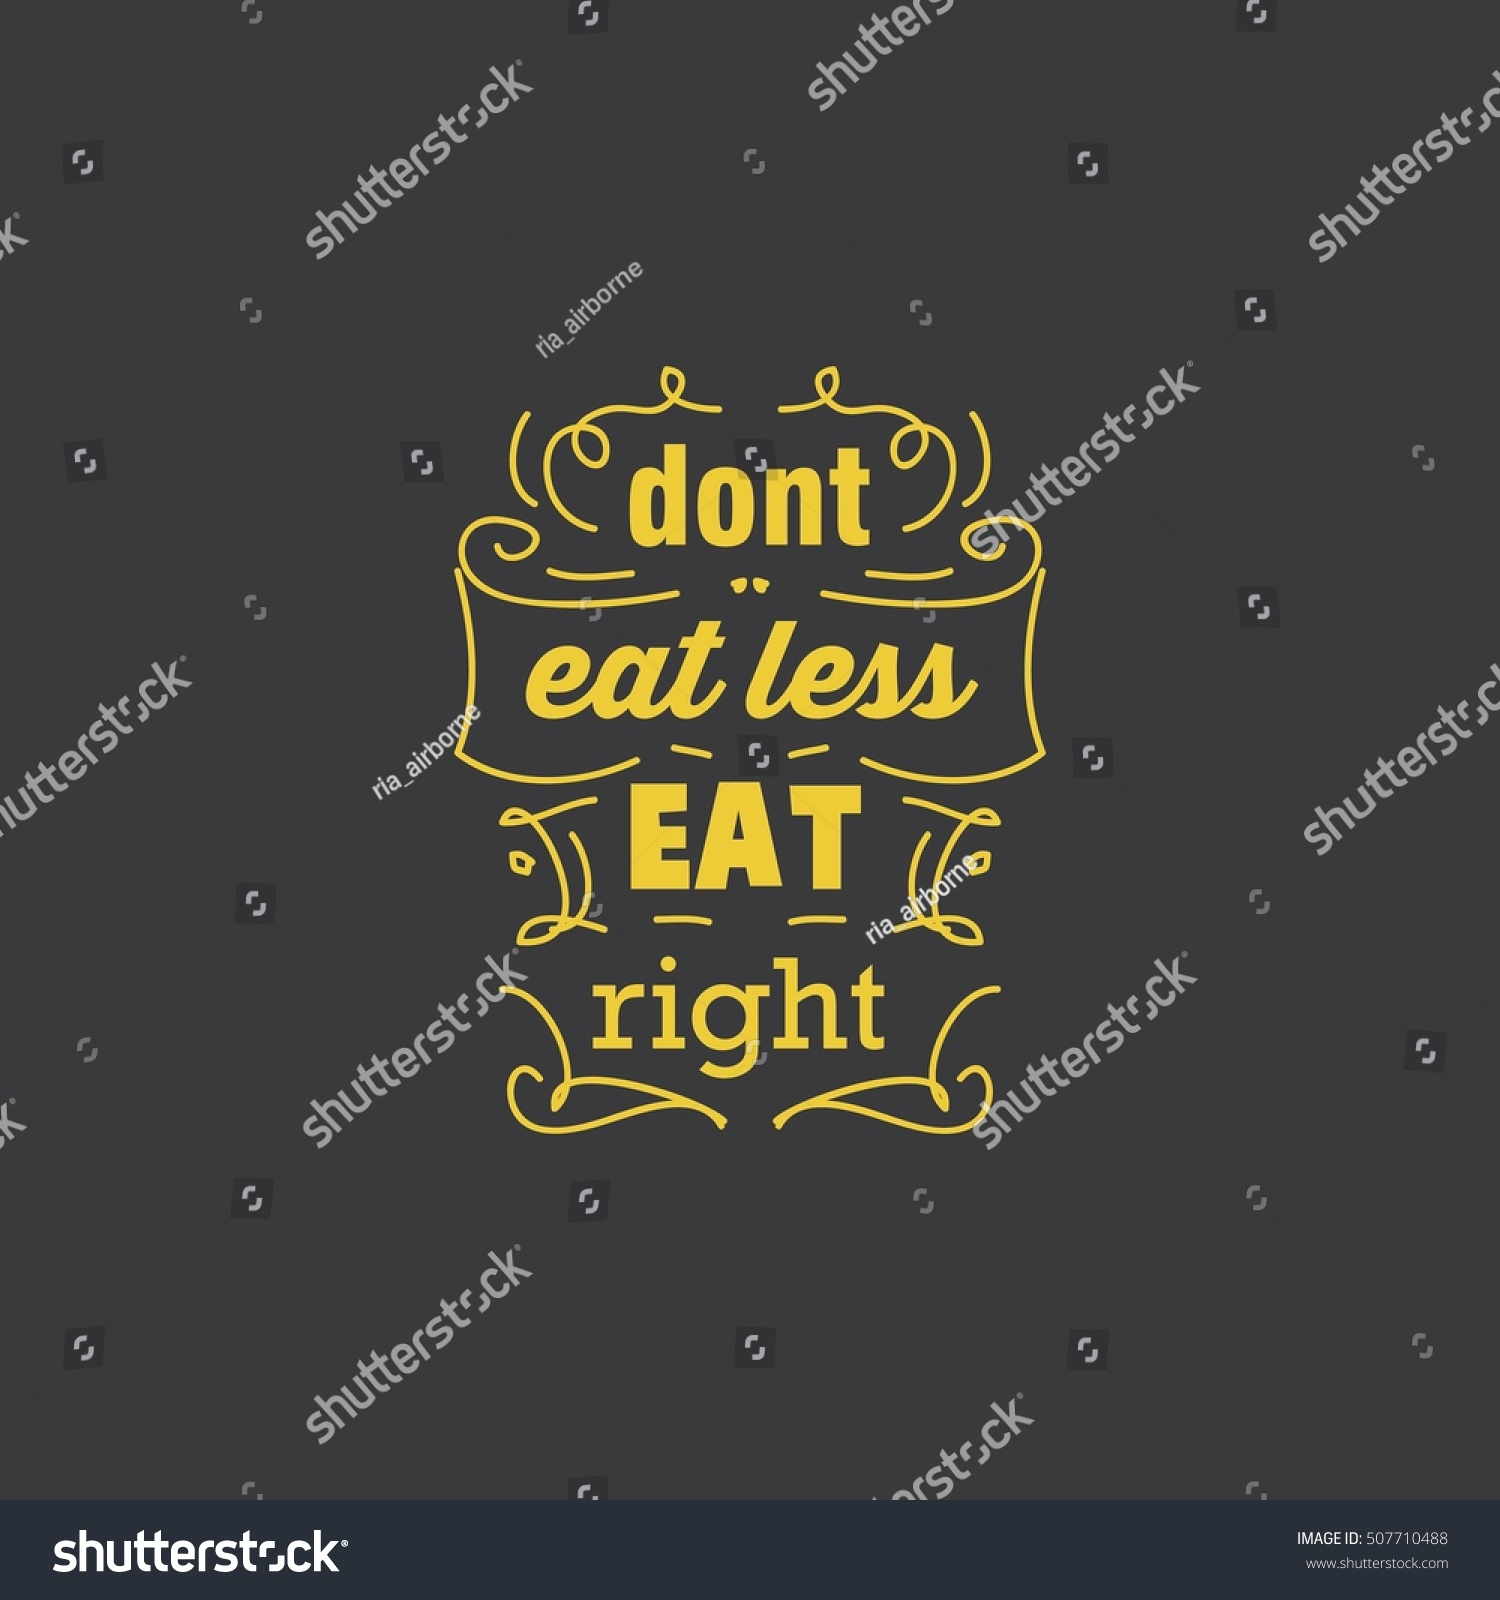 Good Health Quotes Health Quotes Good Food Quotes Stock Vector 507710488  Shutterstock